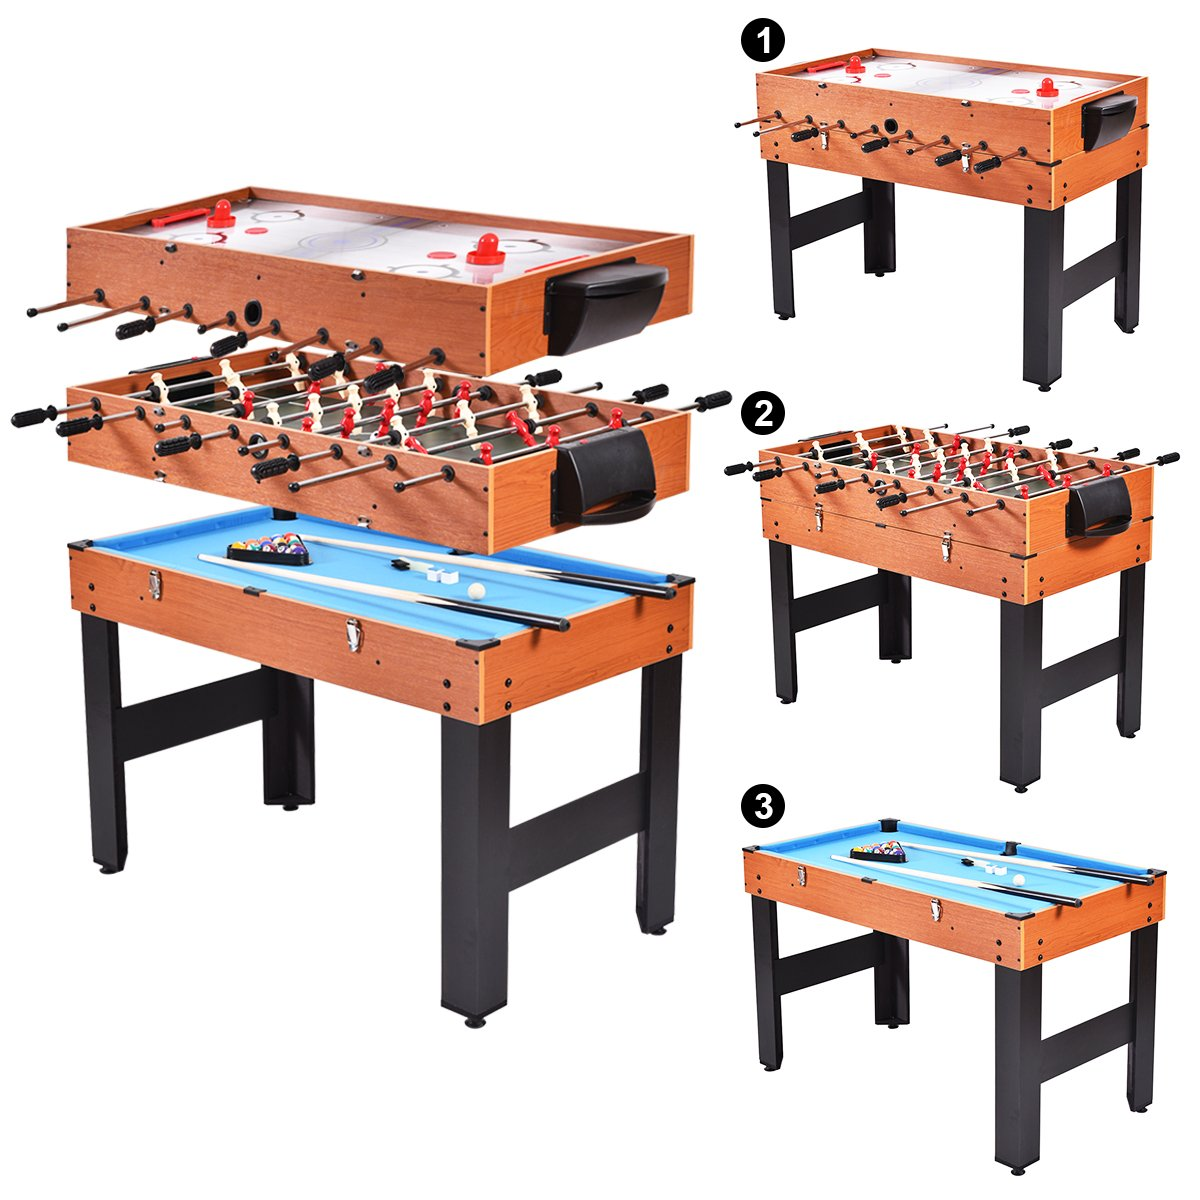 GYMAX Multi Game Table, 3-in-1 Multifunction Foosball Billiard Slide Hockey Combo Arcade Game Table by GYMAX